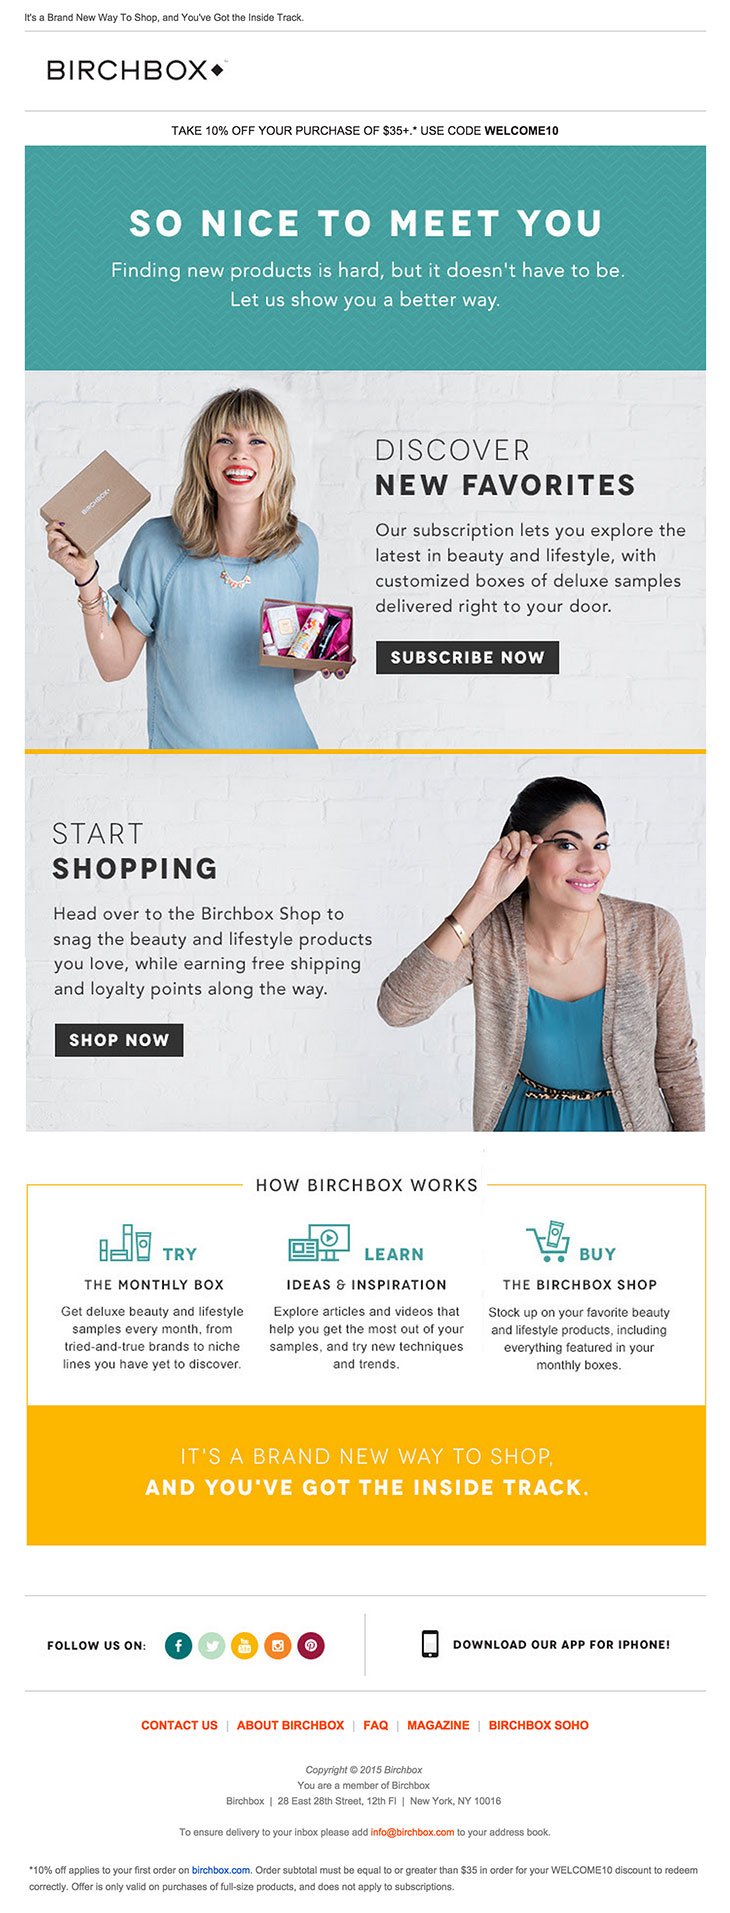 Birchbox Welcome email example